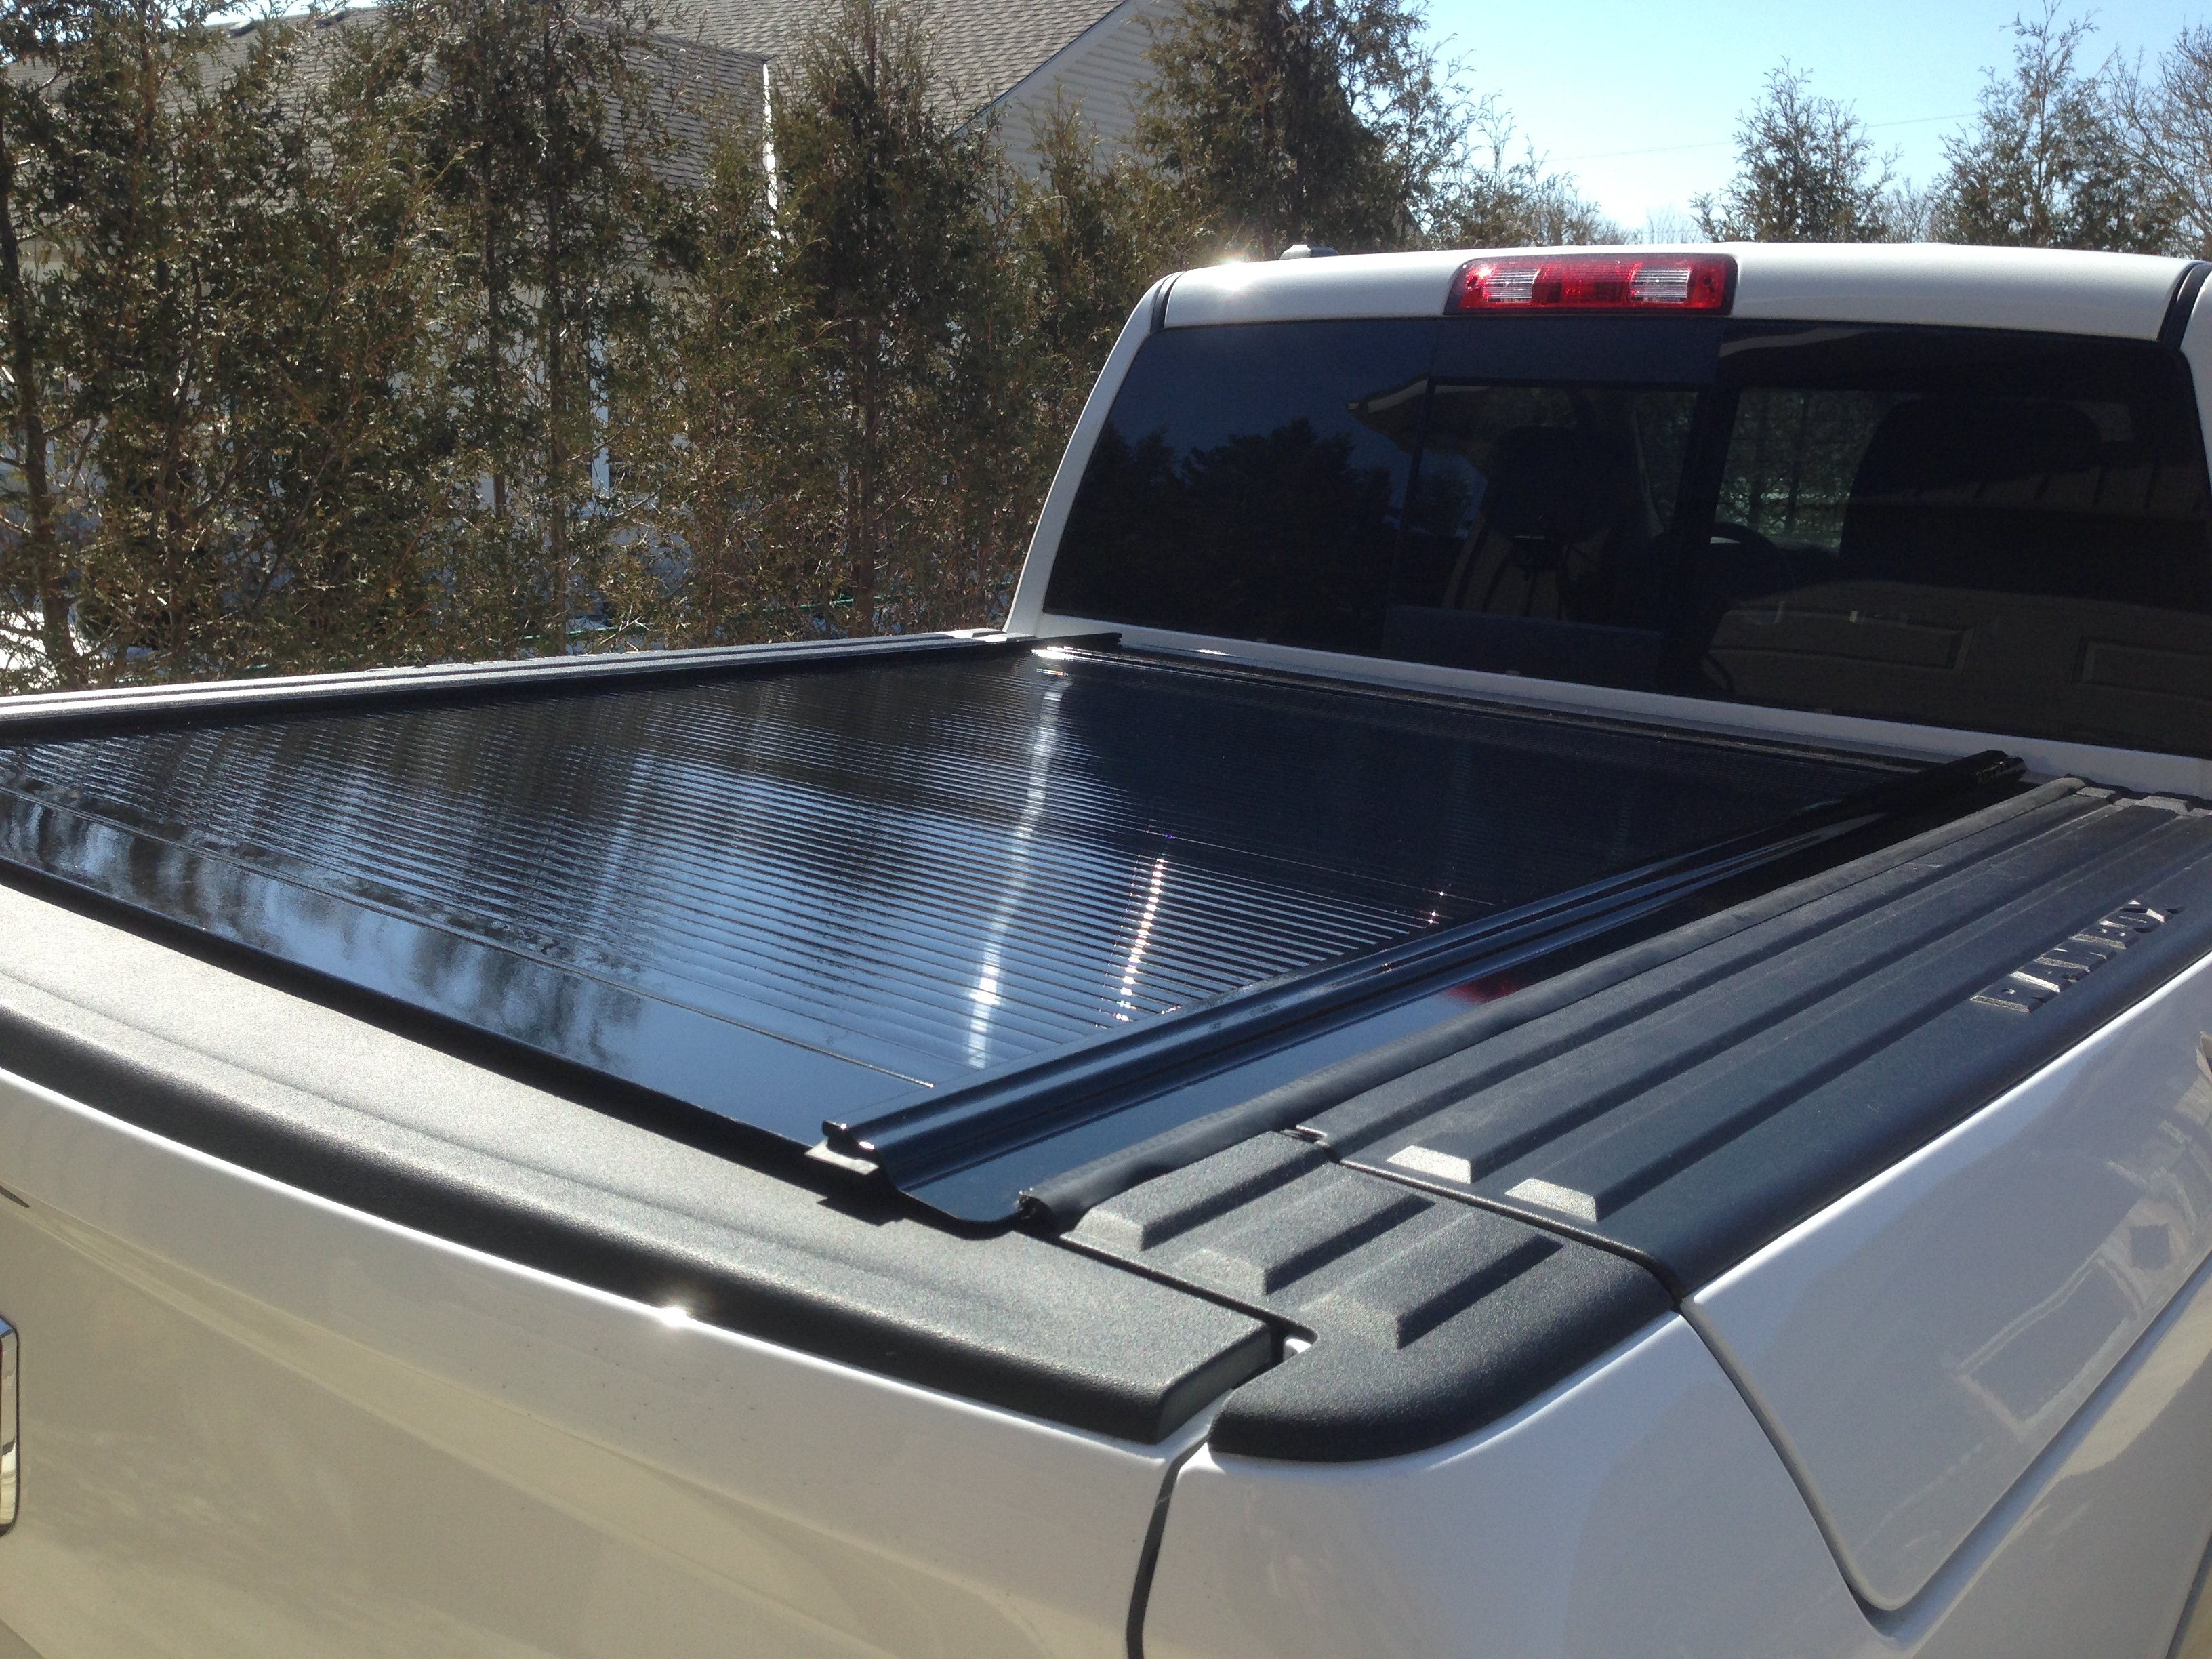 Rogue Racing Spare Tire Carrier Bed Support 45525 together with 466198 further Using Fold A Cover With Rail Caps And Bed Liners moreover Low Pro Hollow Point Truck Rack in addition 2004 Dodge Ram 2500 Diesel Towing Capacity. on 2012 dodge ram bed cover